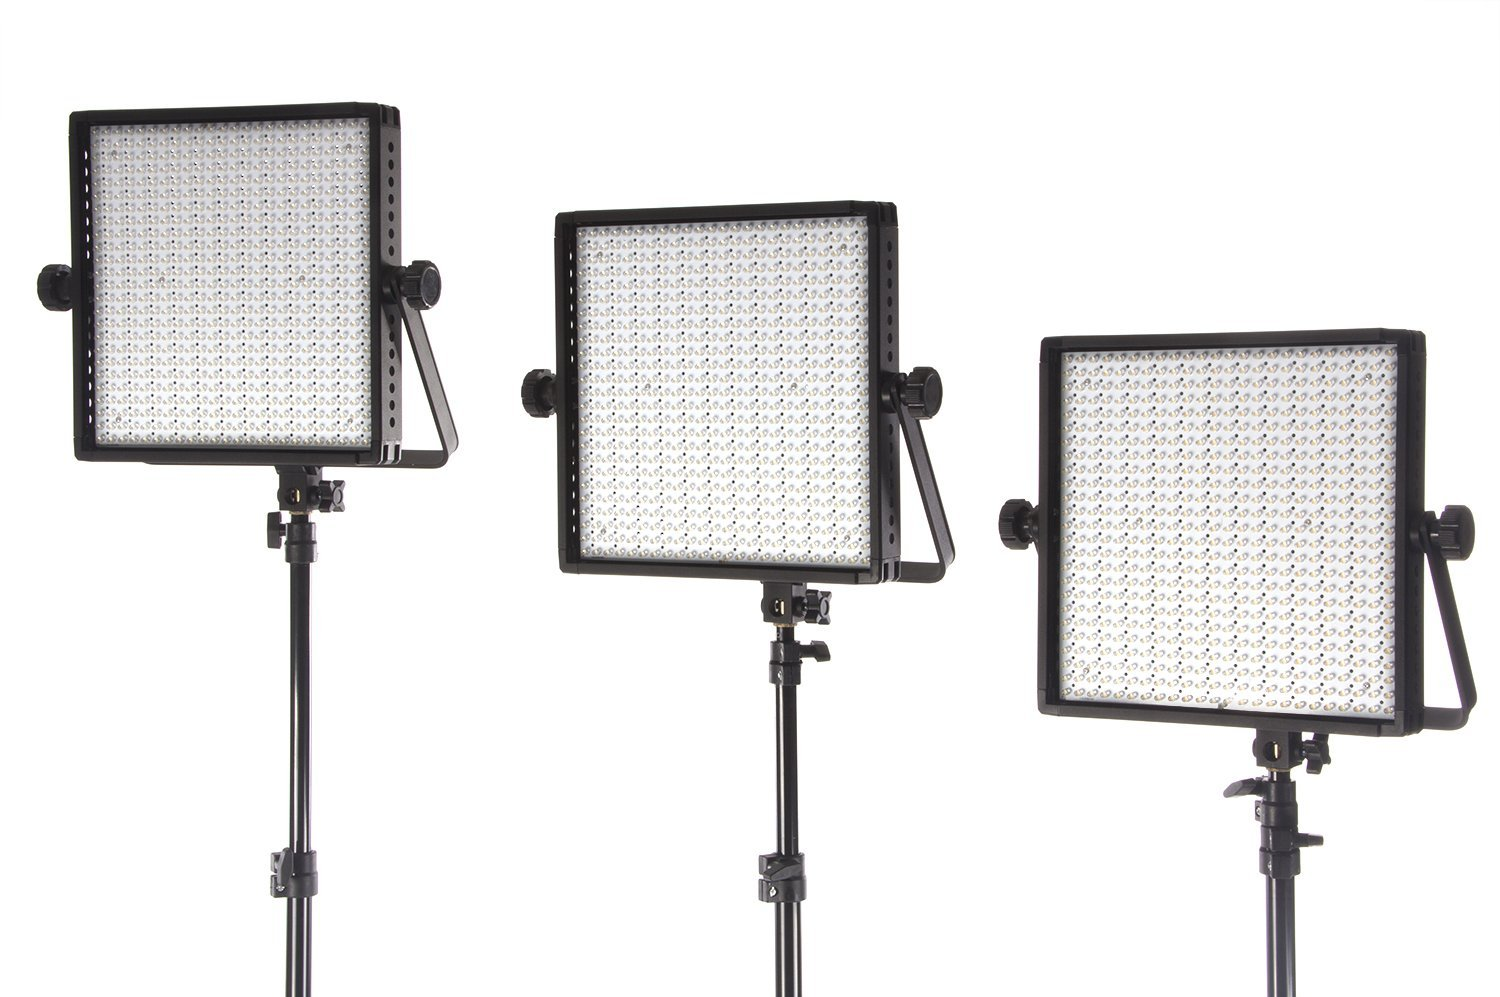 StudioPRO (Set of 3) S-600B Dimmable Super Bright 600 Full Spectrum LED Light Panel Used for Film, Video and Photography Studio Lighting Kit - Continuous 3200K-5600K Bi Color